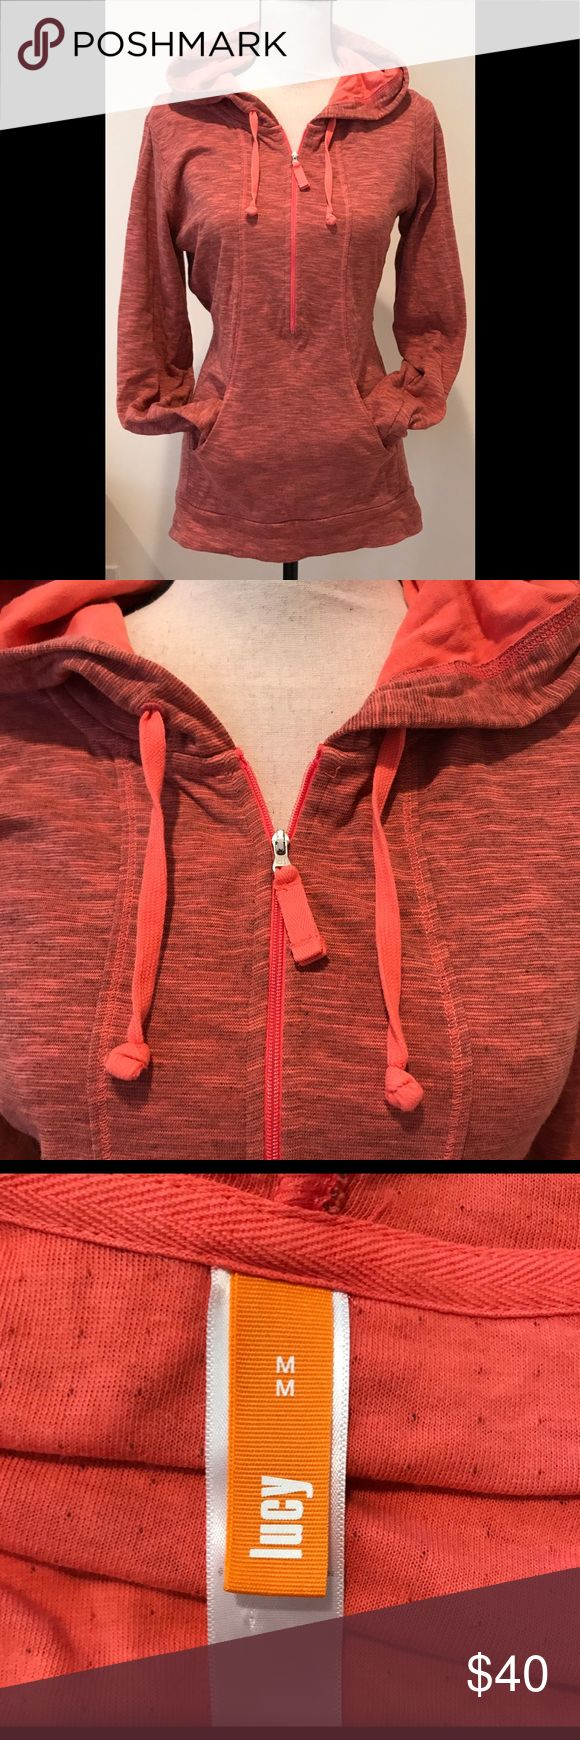 Lucy quarter zip coral jacket Lucy quarter zip coral jacket/hoodie. Adorable and warm. Excellent, like new condition. Lucy Jackets & Coats